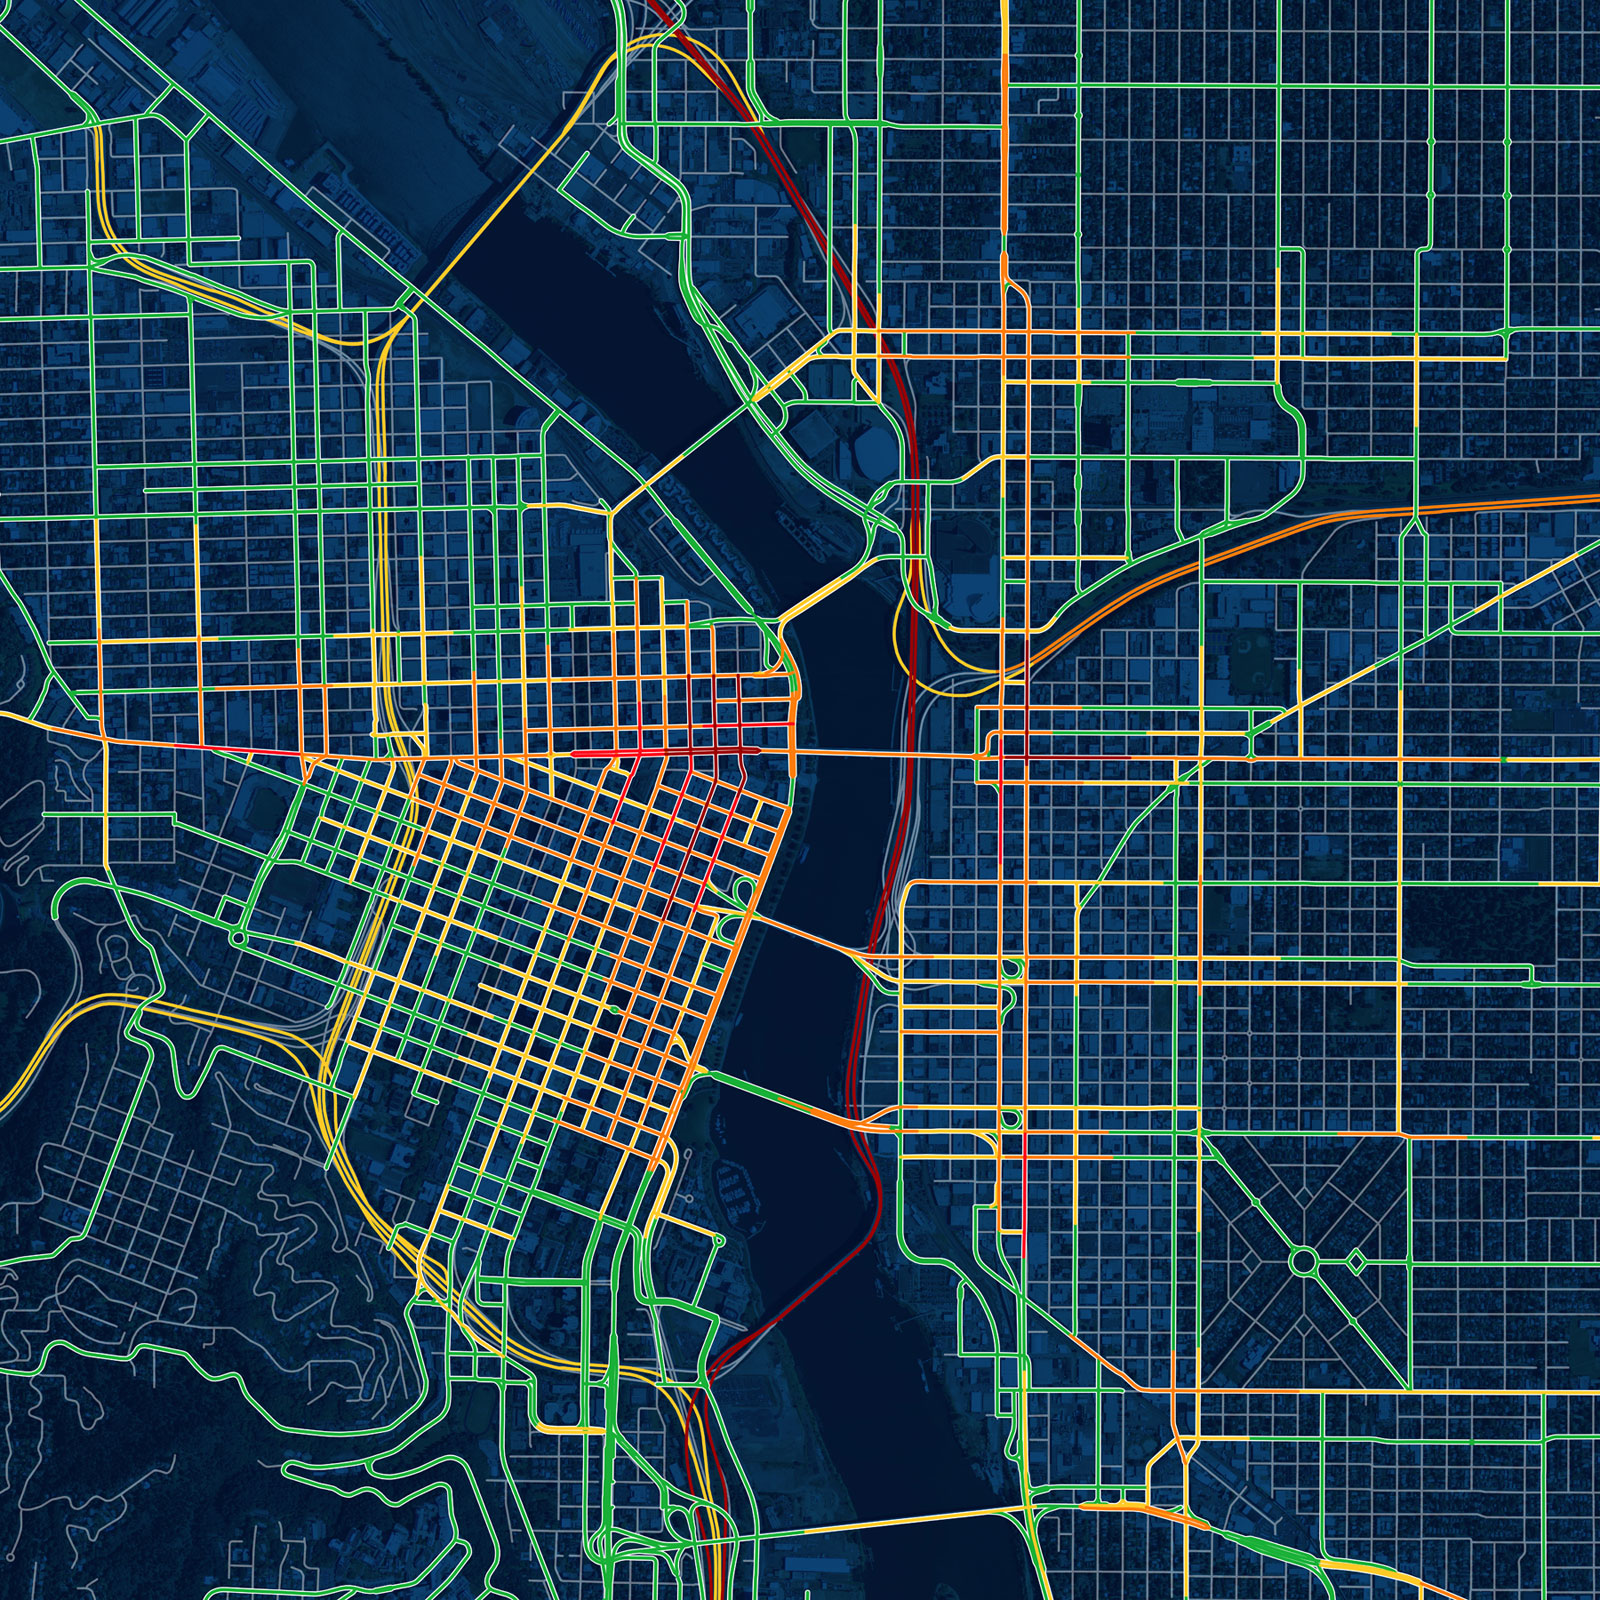 Drunk Traffic Map of Portland DUIs | Doug McCune on